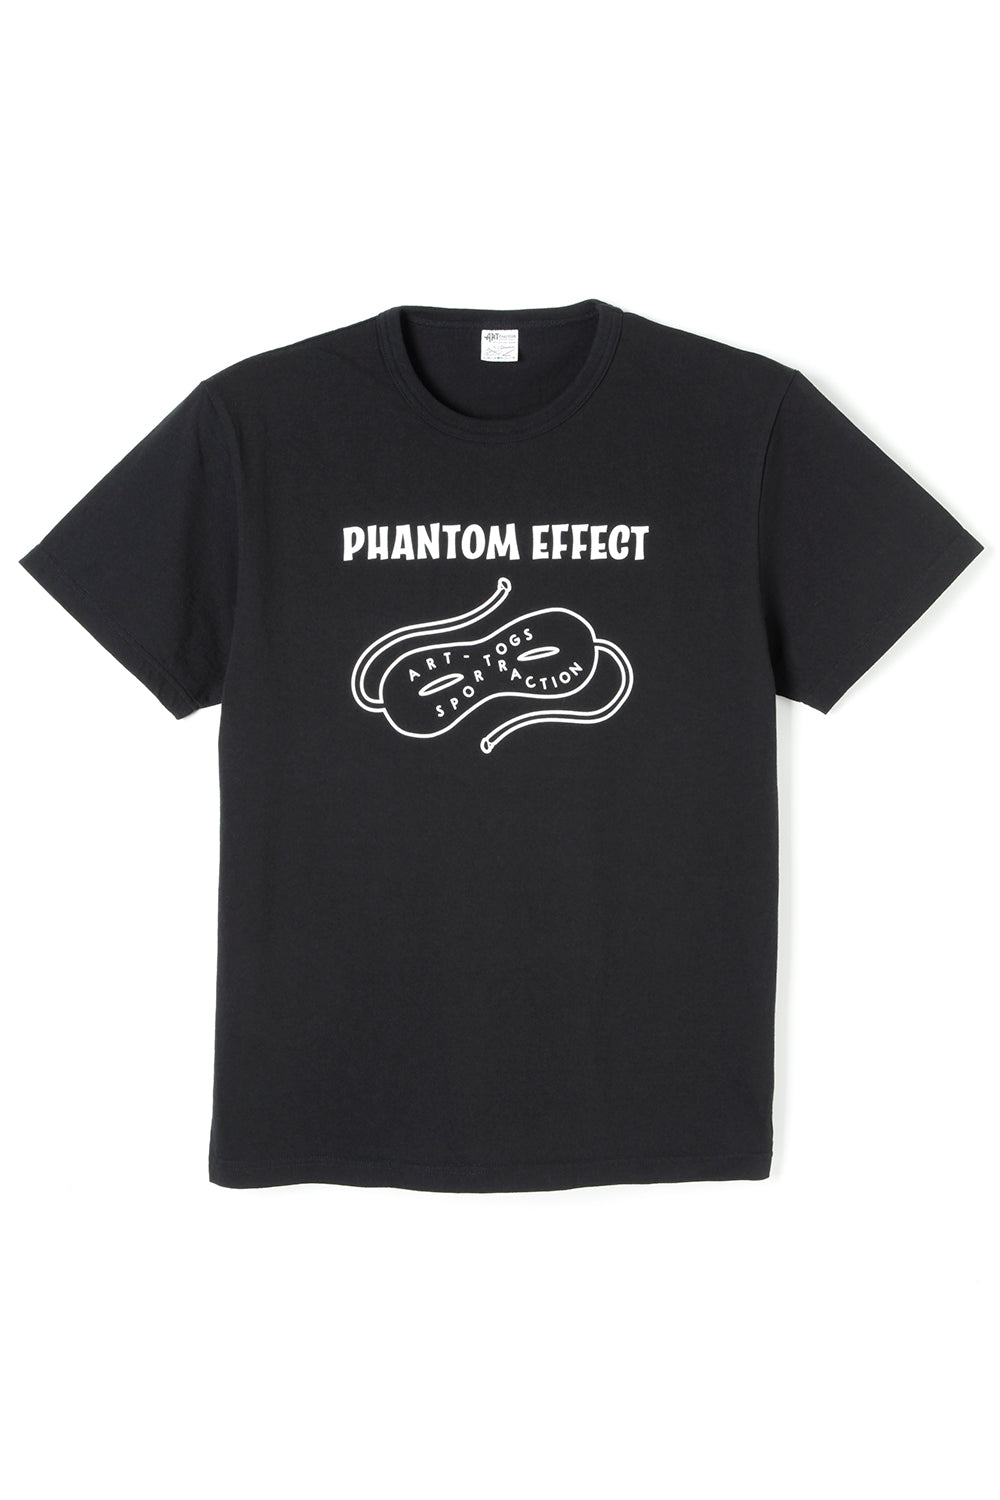 ART061 Phantom Effect S/S Tee -Black-